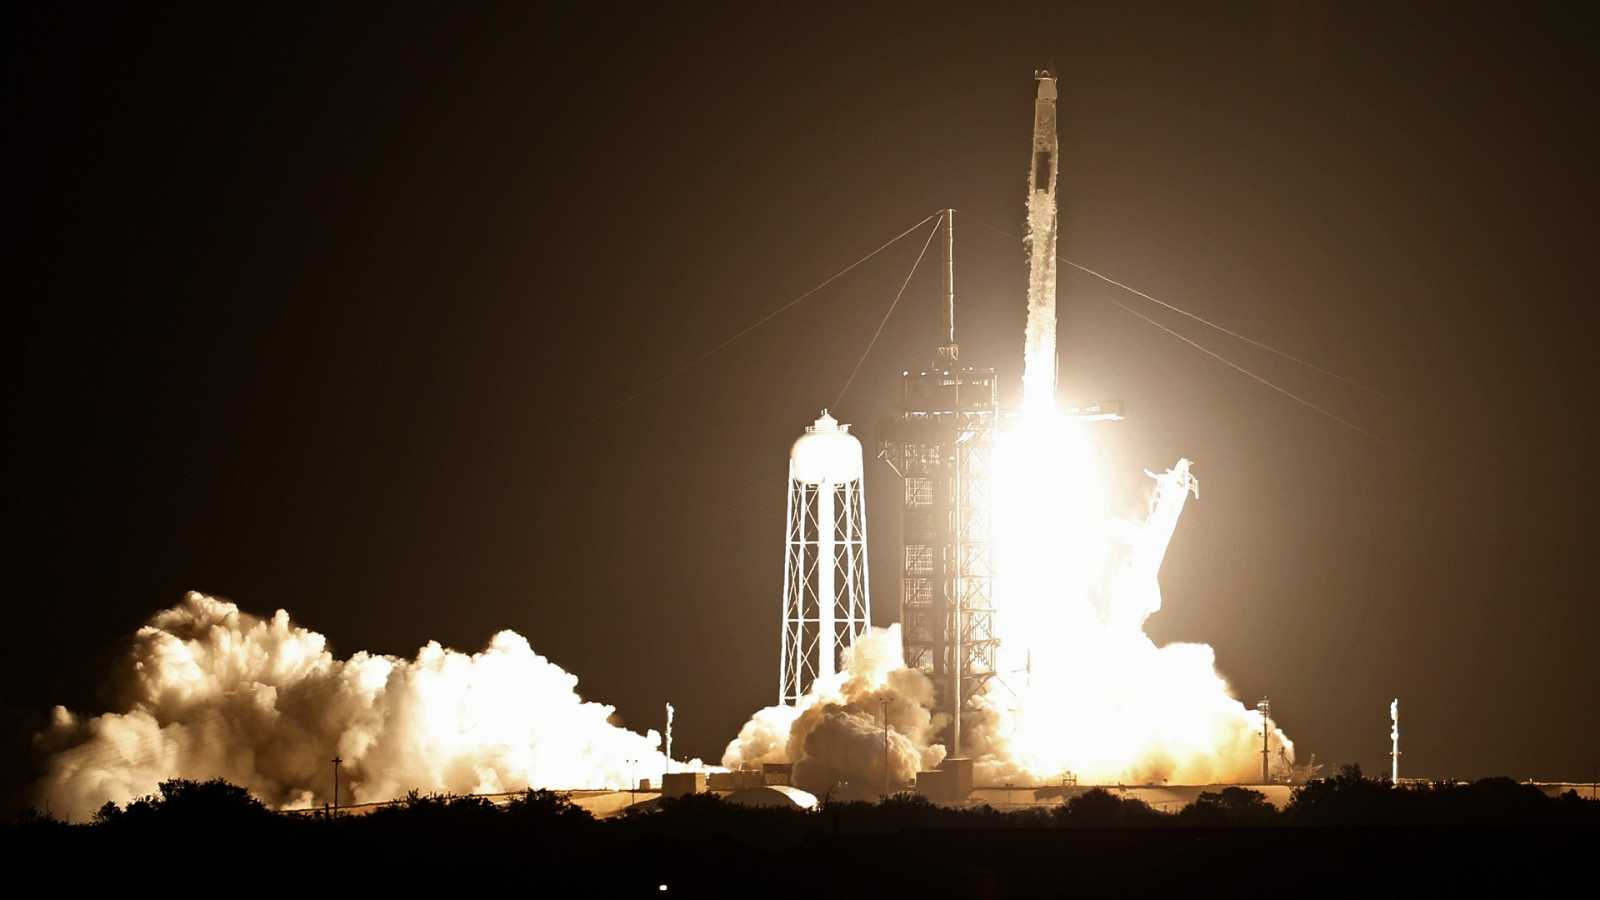 """Three, two, one..."": despega con éxito la segunda misión tripulada de la NASA y SpaceX a la Estación Espacial Internacional"